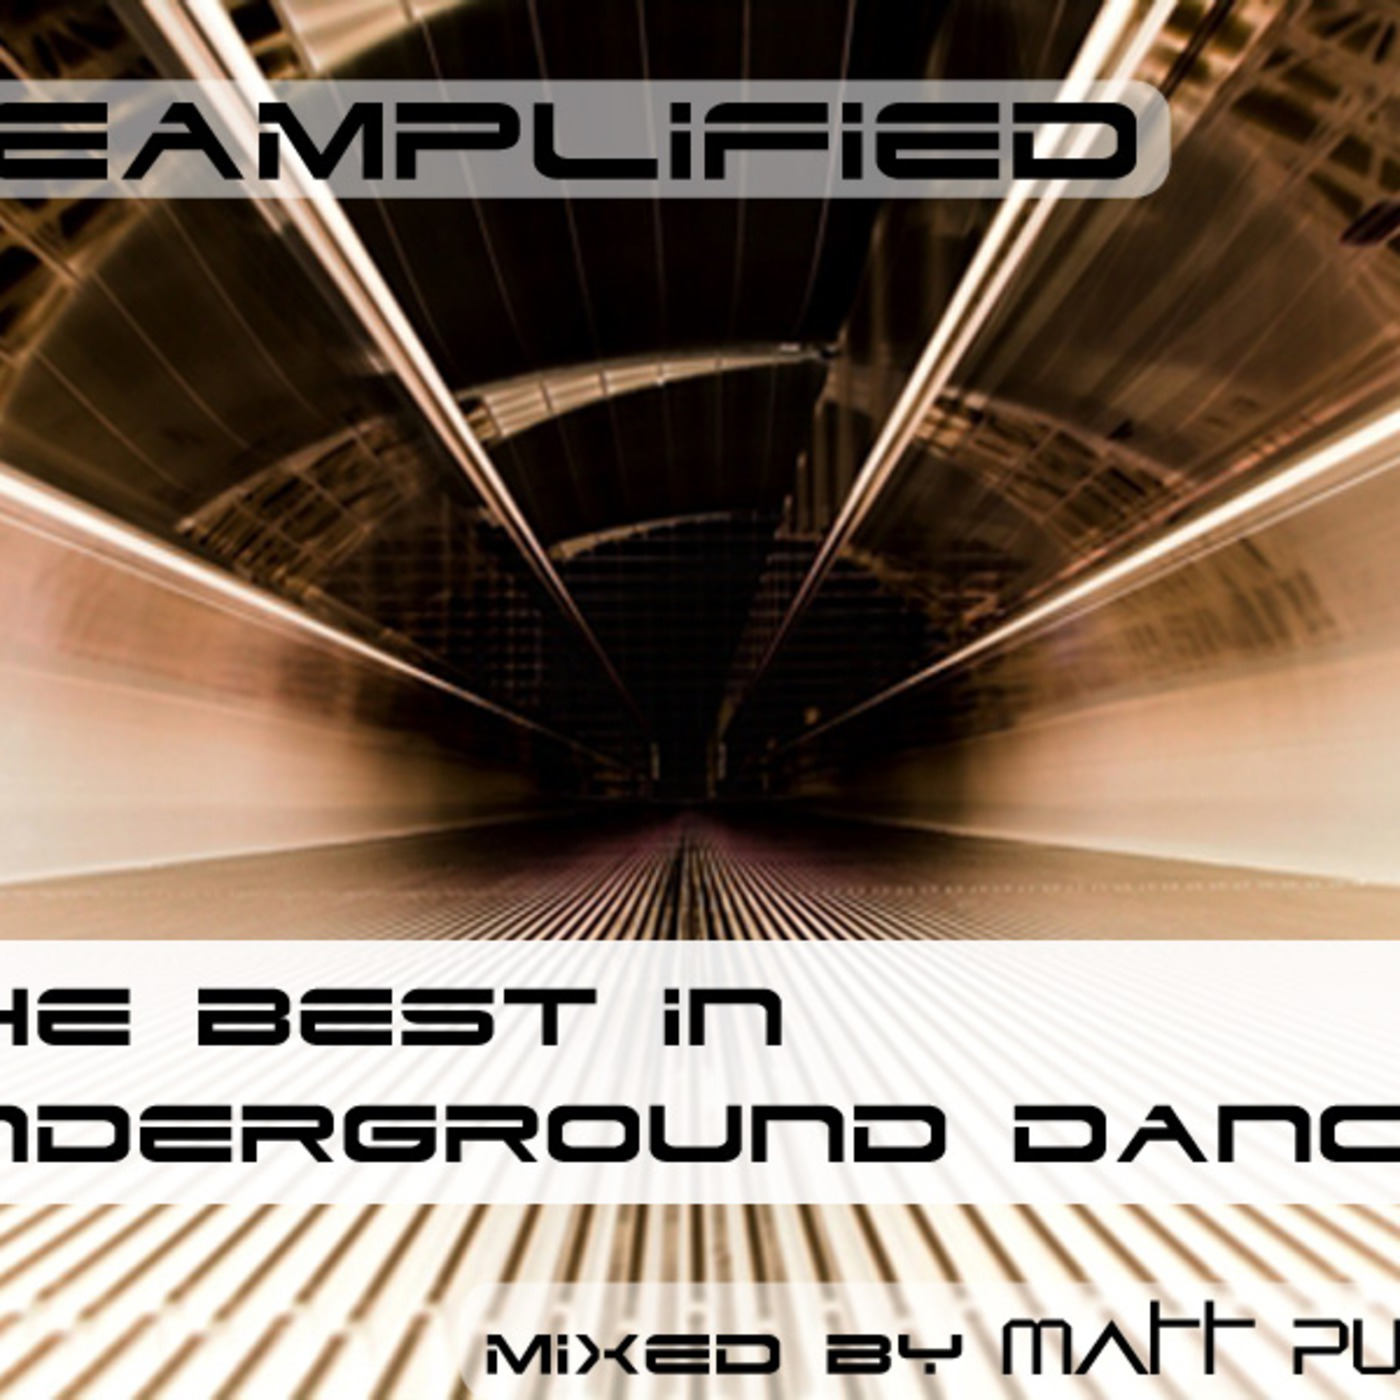 Reamplified - The best in underground dance music!